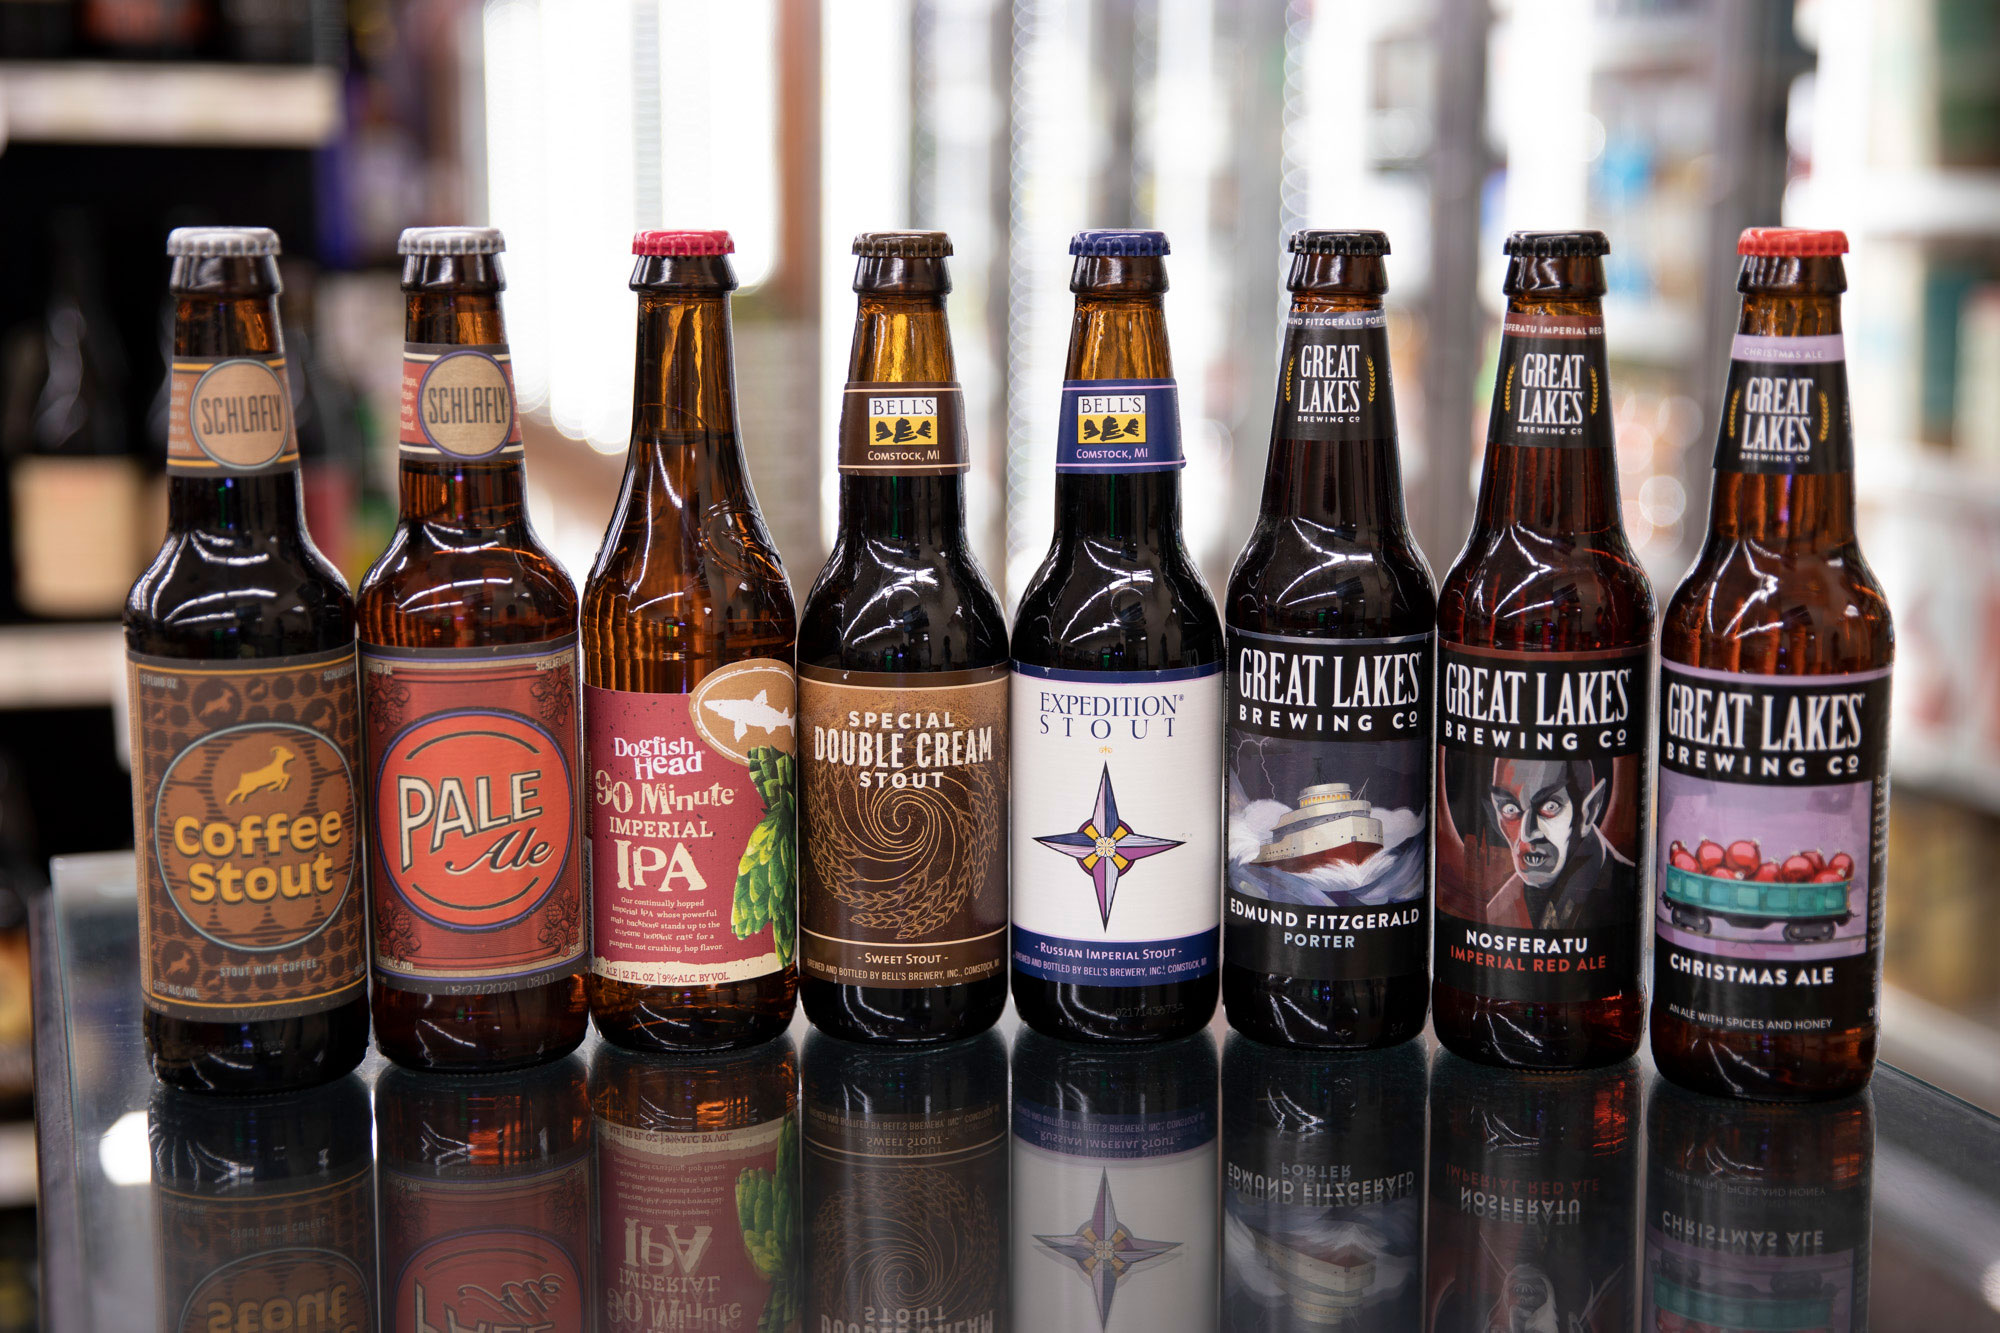 various types of craft beer bottles lined up in a row